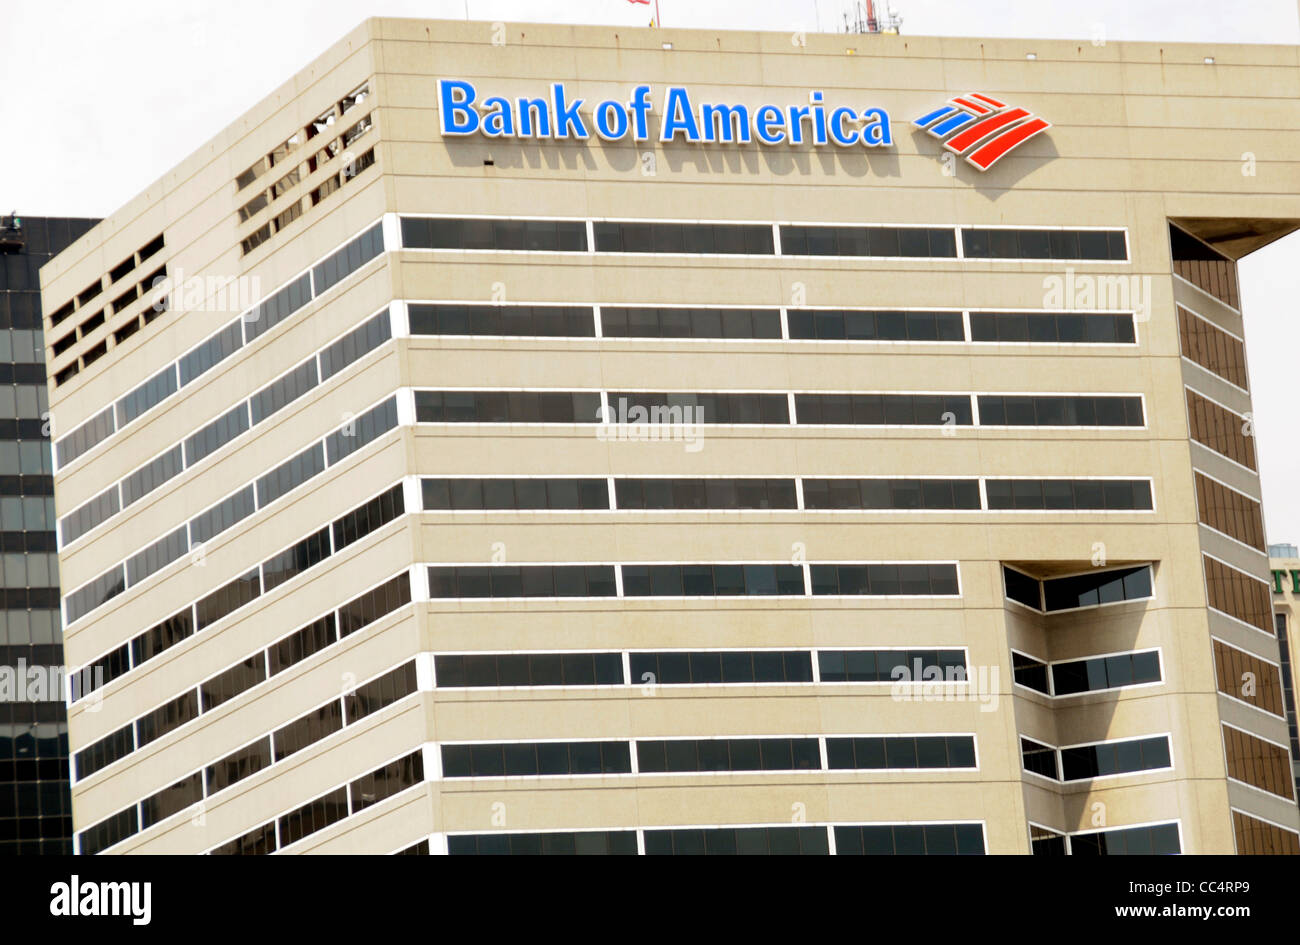 Bank of America Building à Baltimore, Maryland Banque D'Images